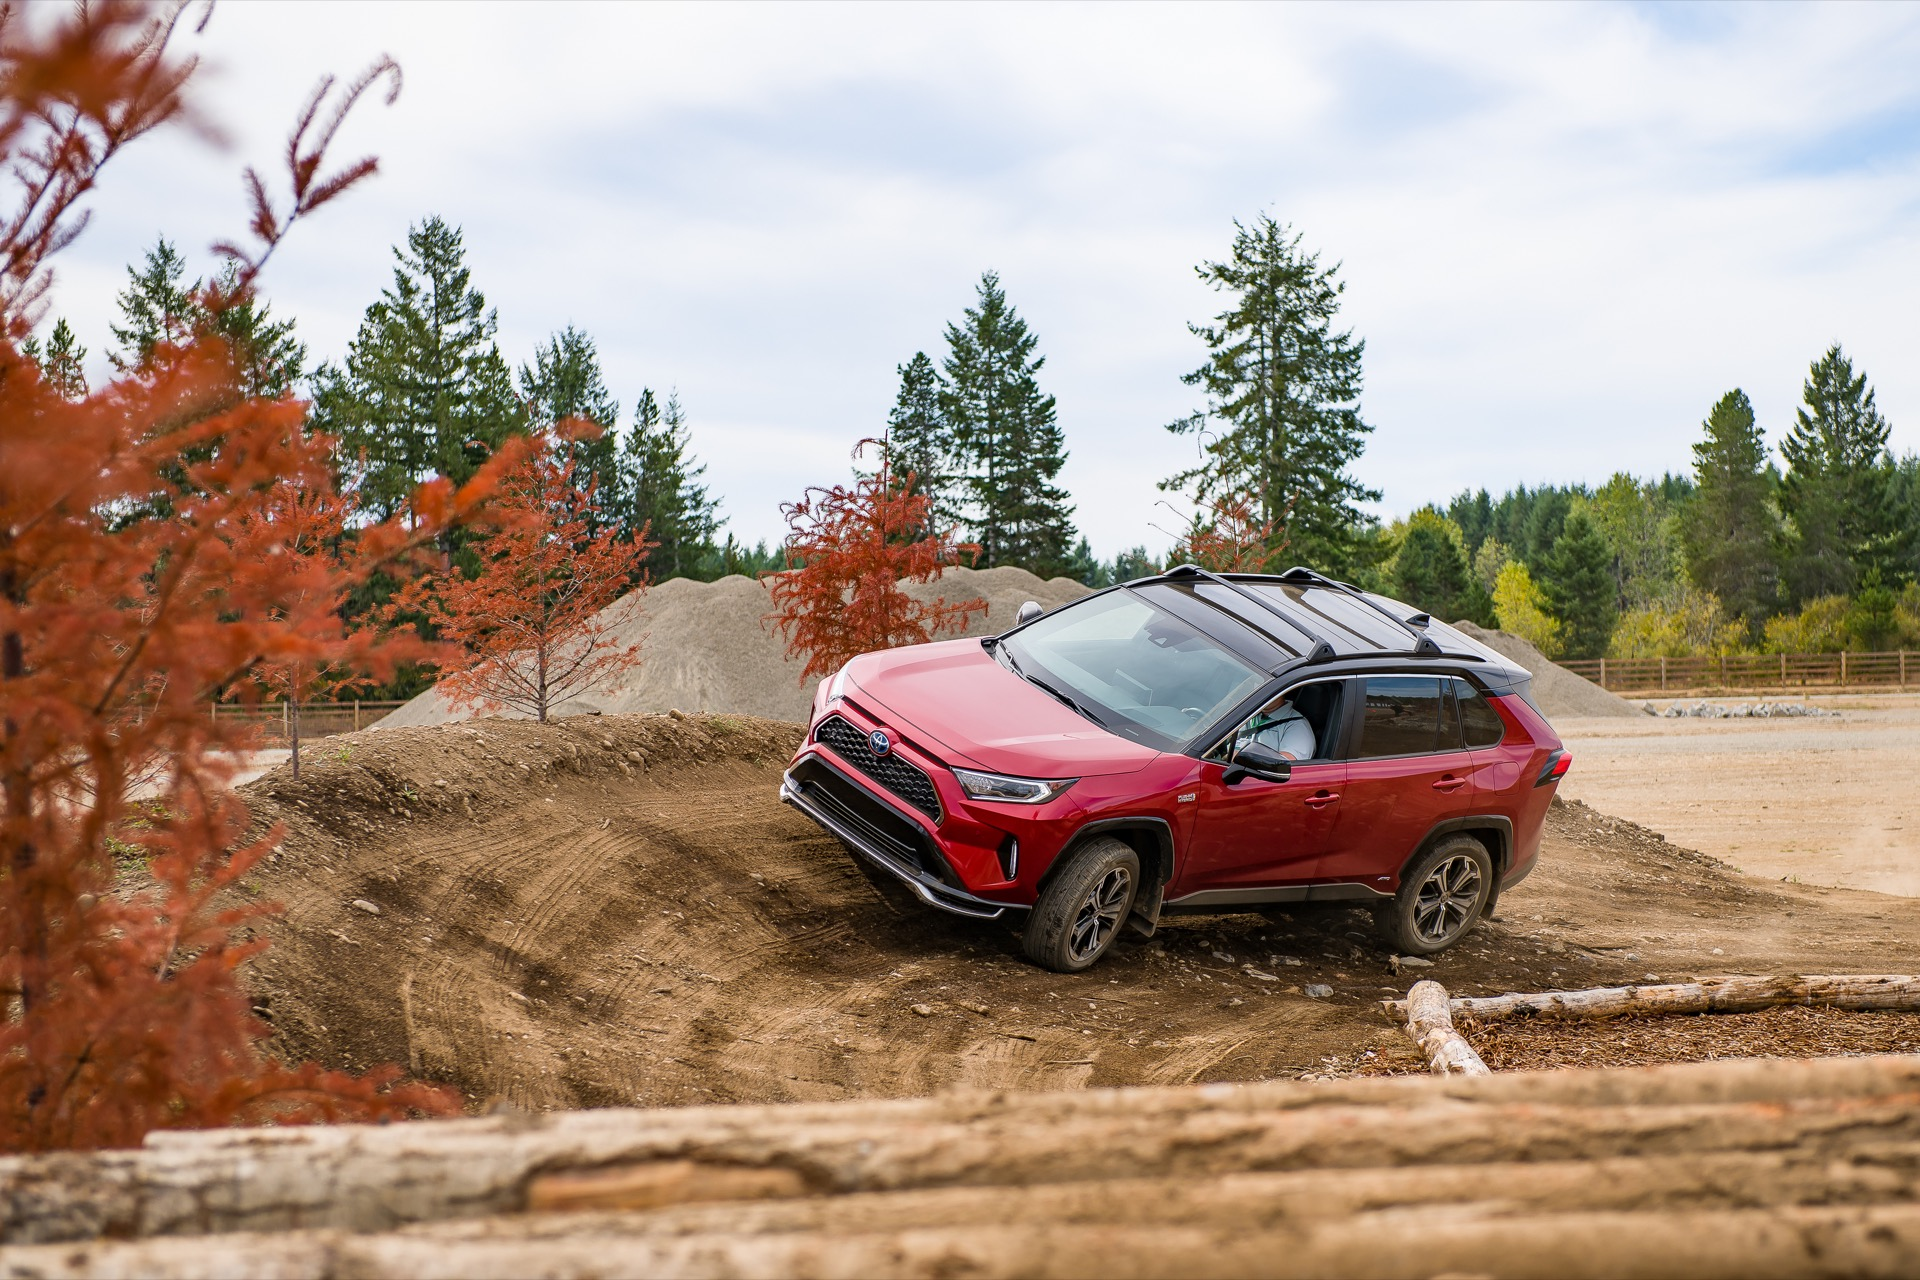 2021 Toyota RAV4 Prime is best off-road with EV Mode